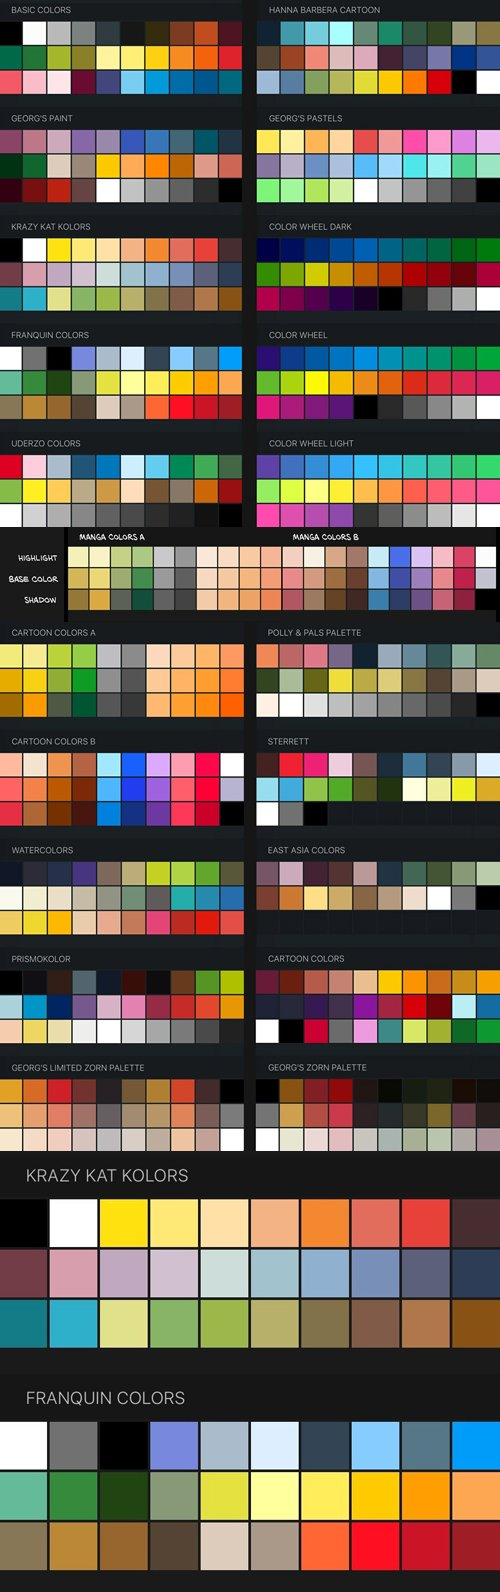 Procreate Color Swatches: 22 Palettes for Painting and Drawing